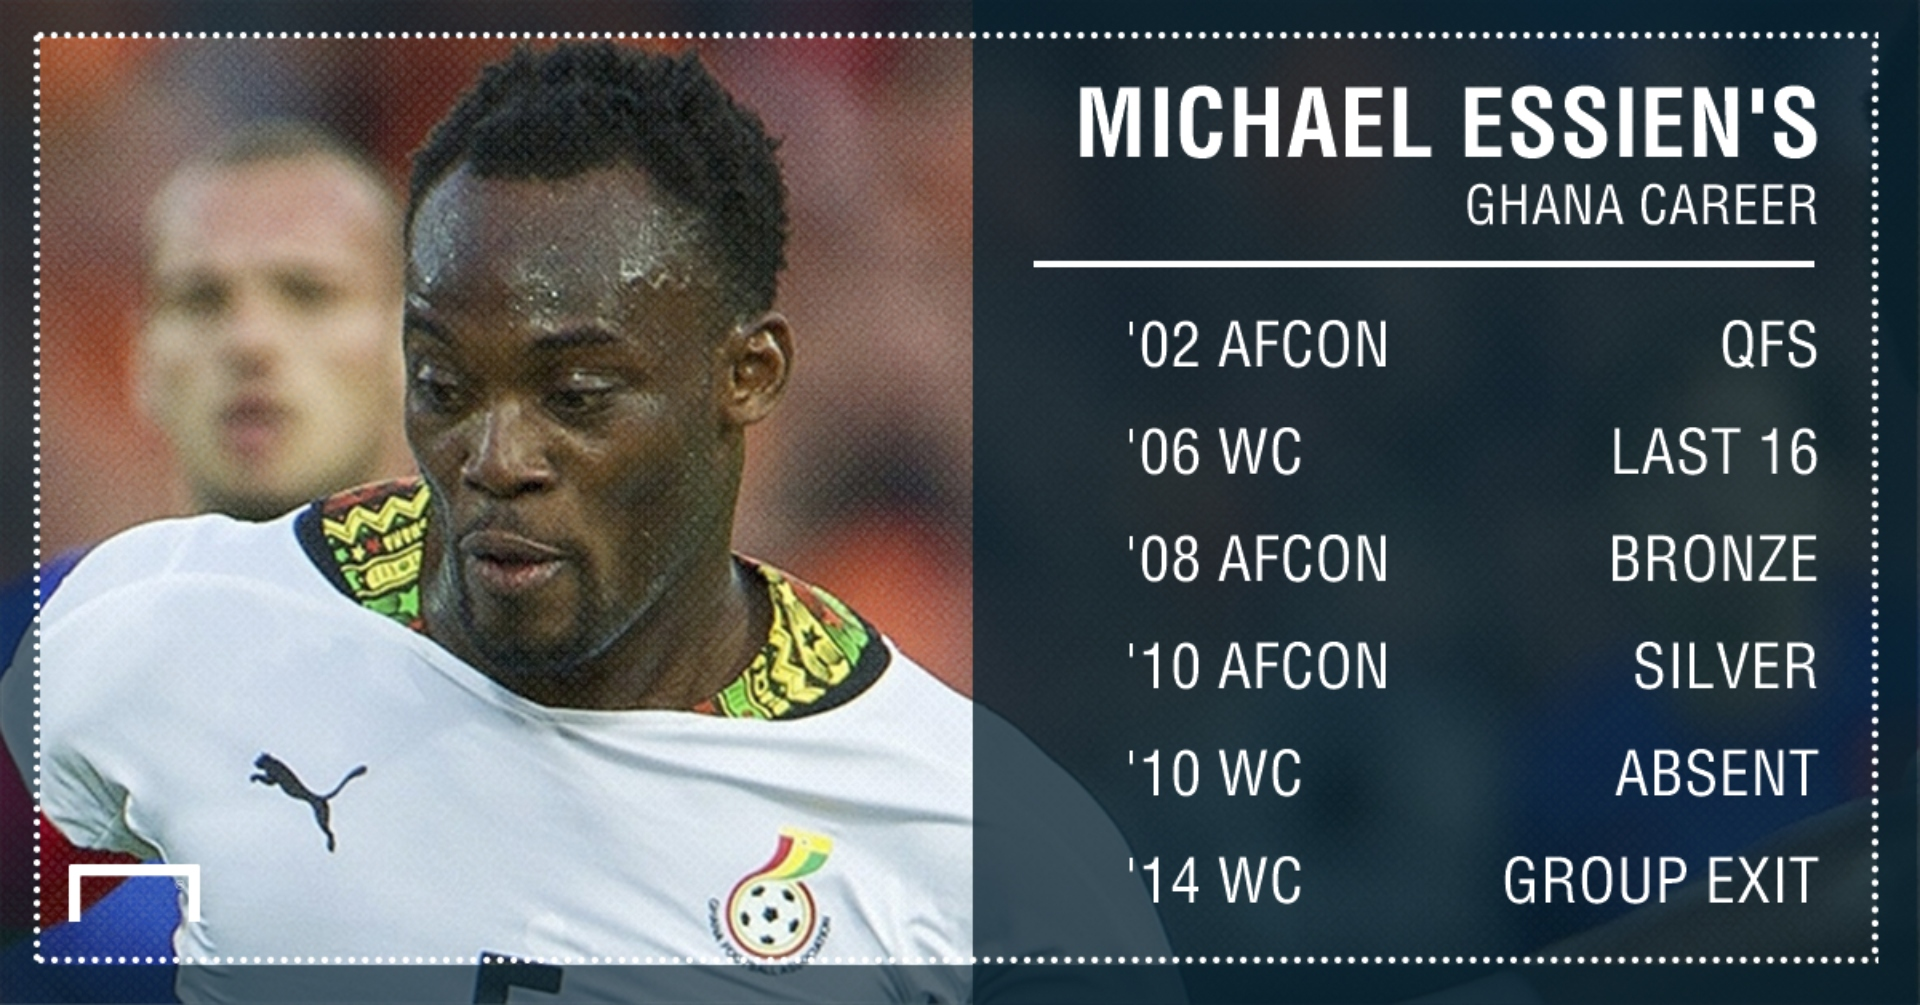 Michael Essien International career